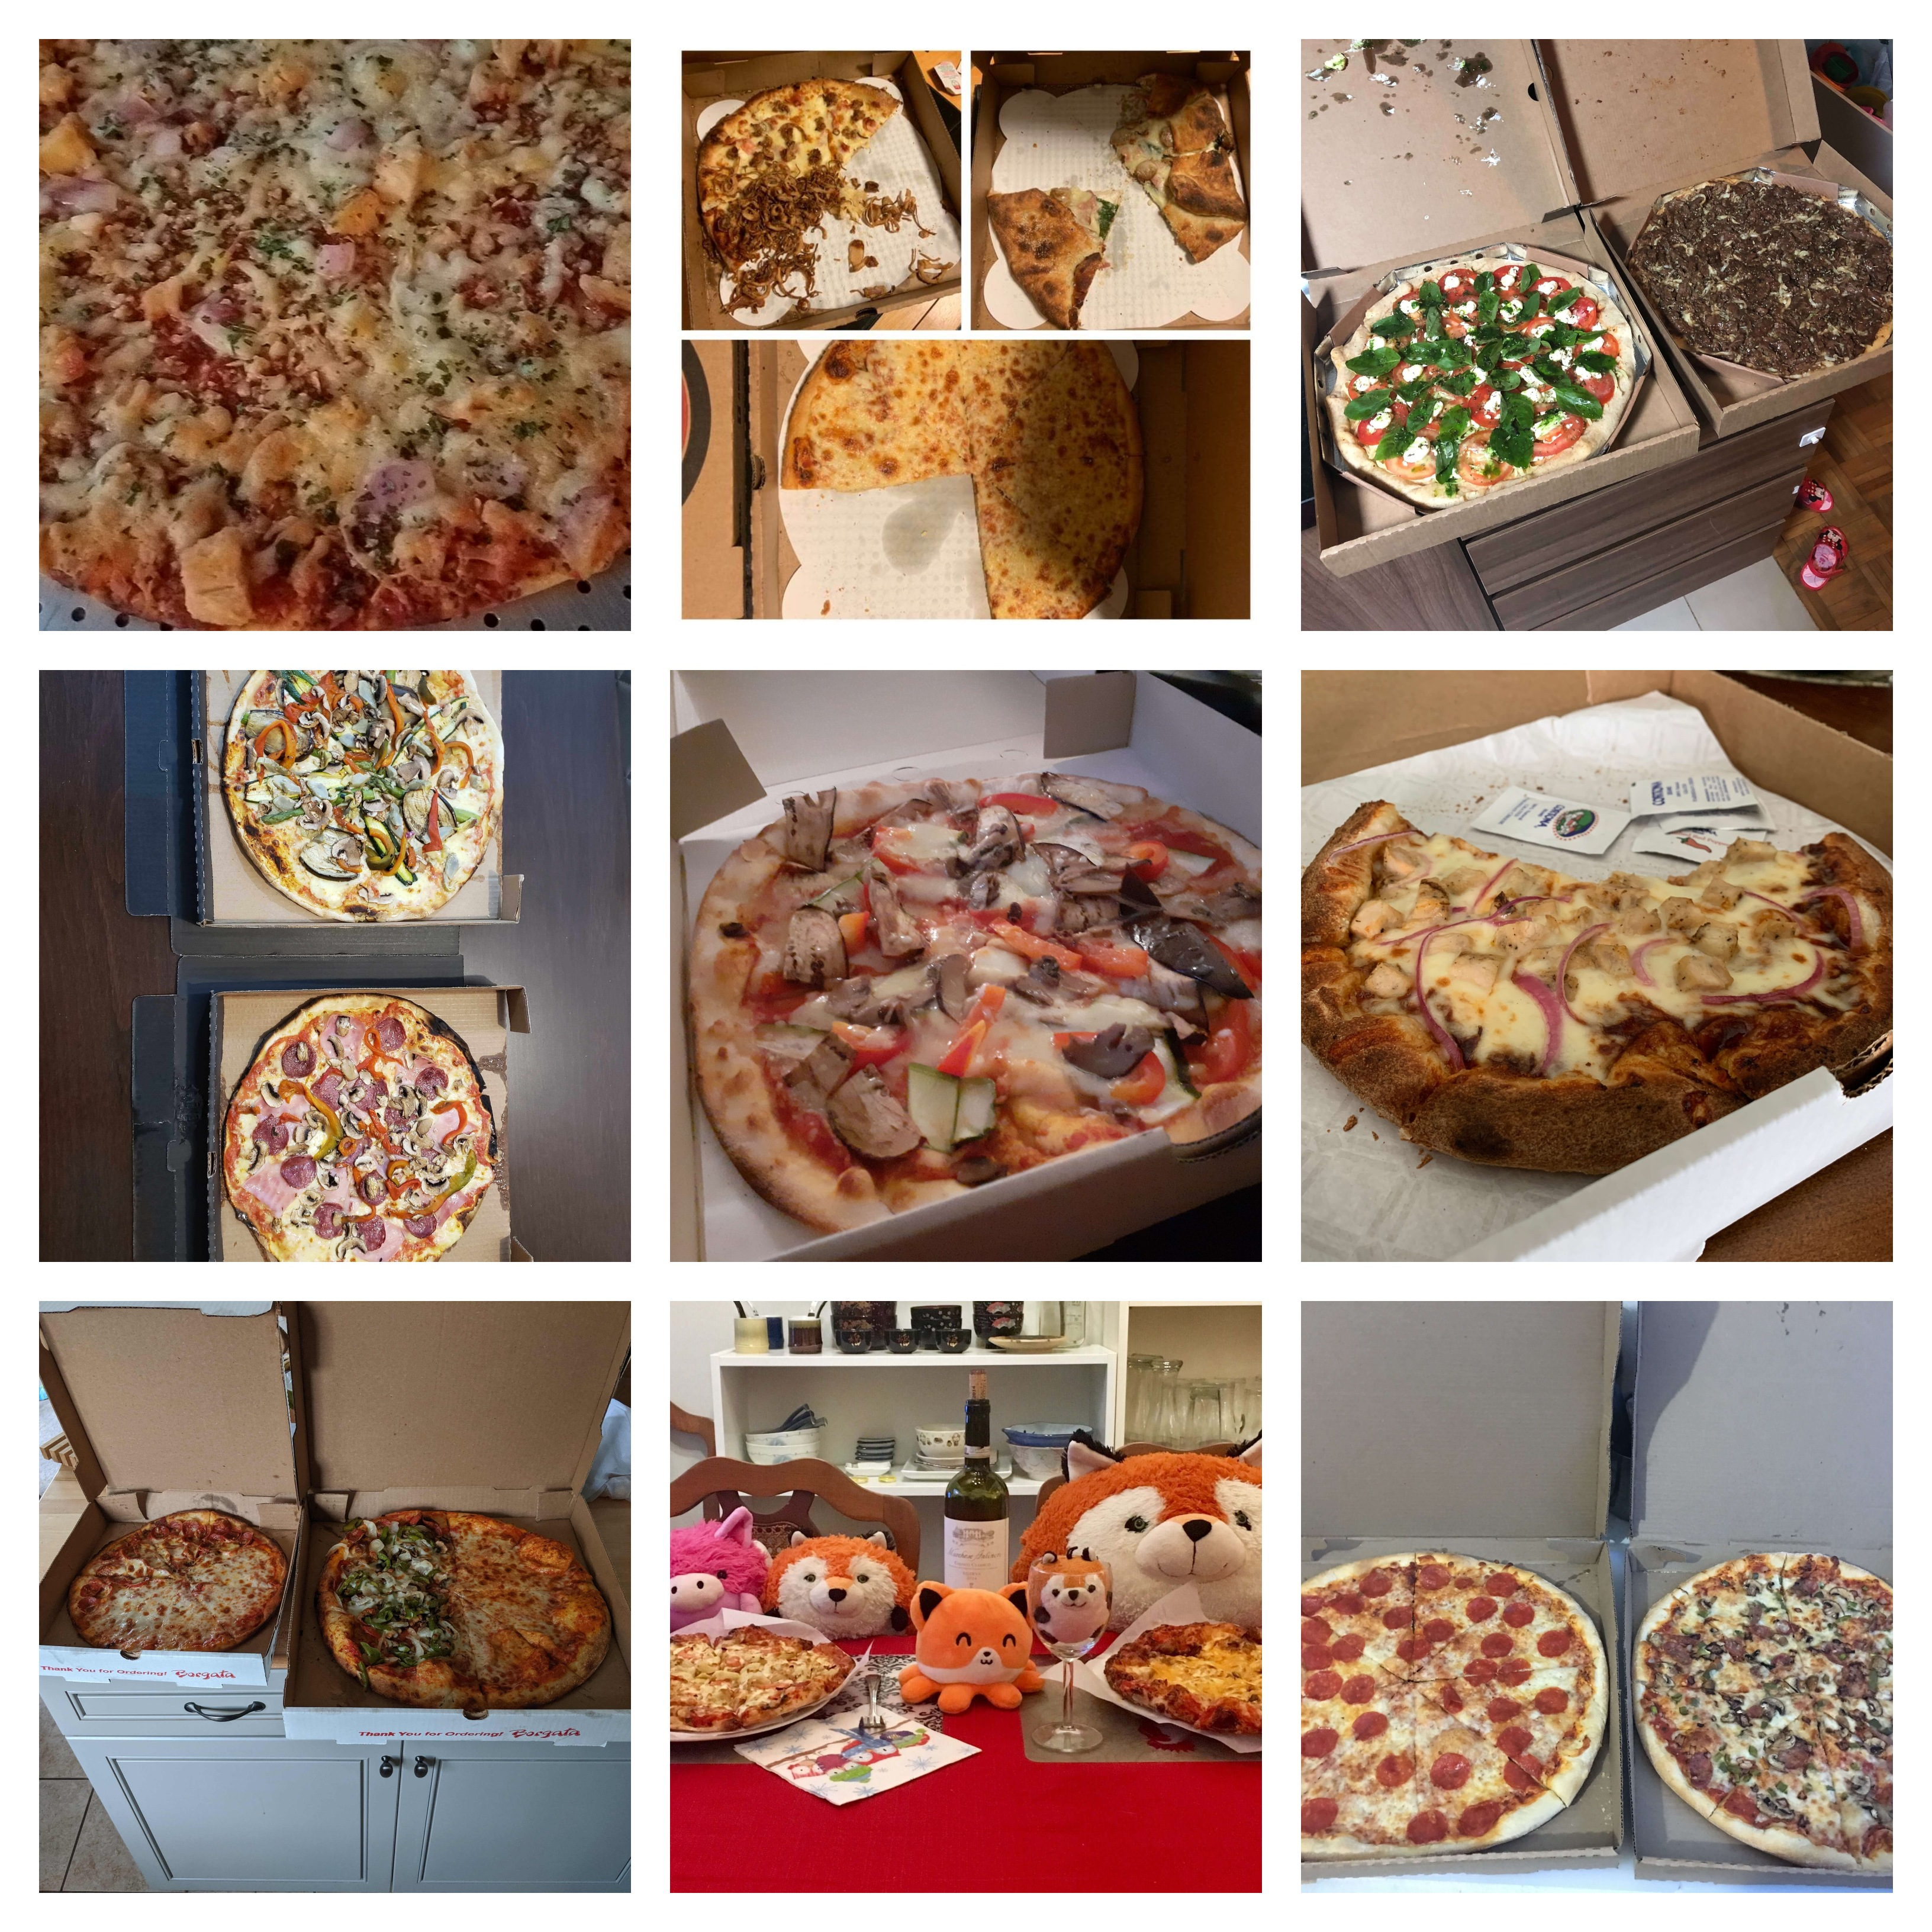 Support Pizza Party 2019-09-27 Collage 3